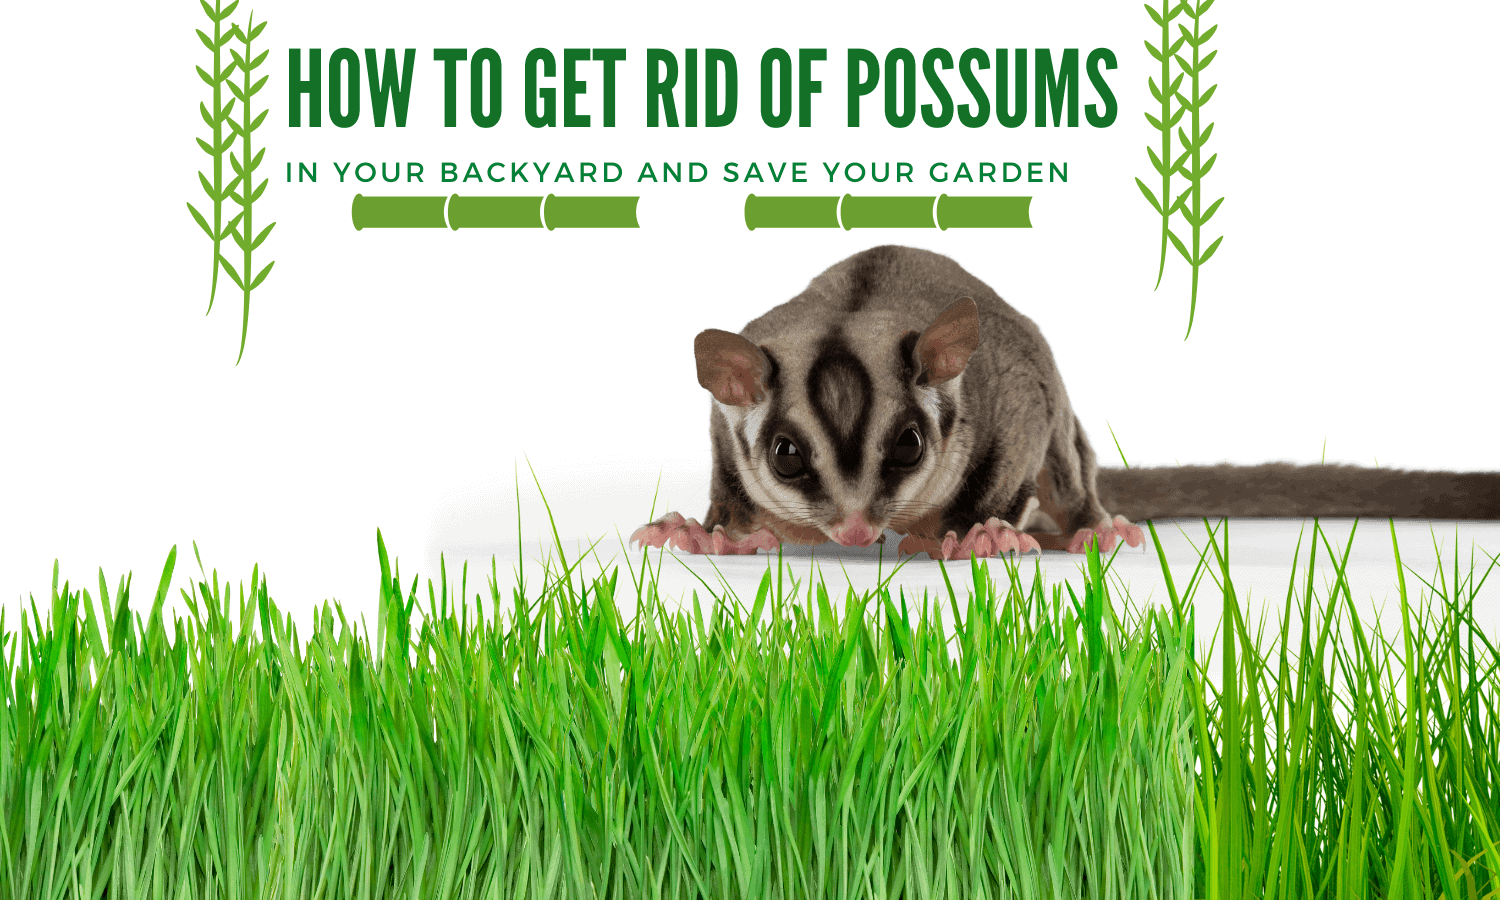 How To Get Rid of Possums In Your Backyard: Natural Remedy